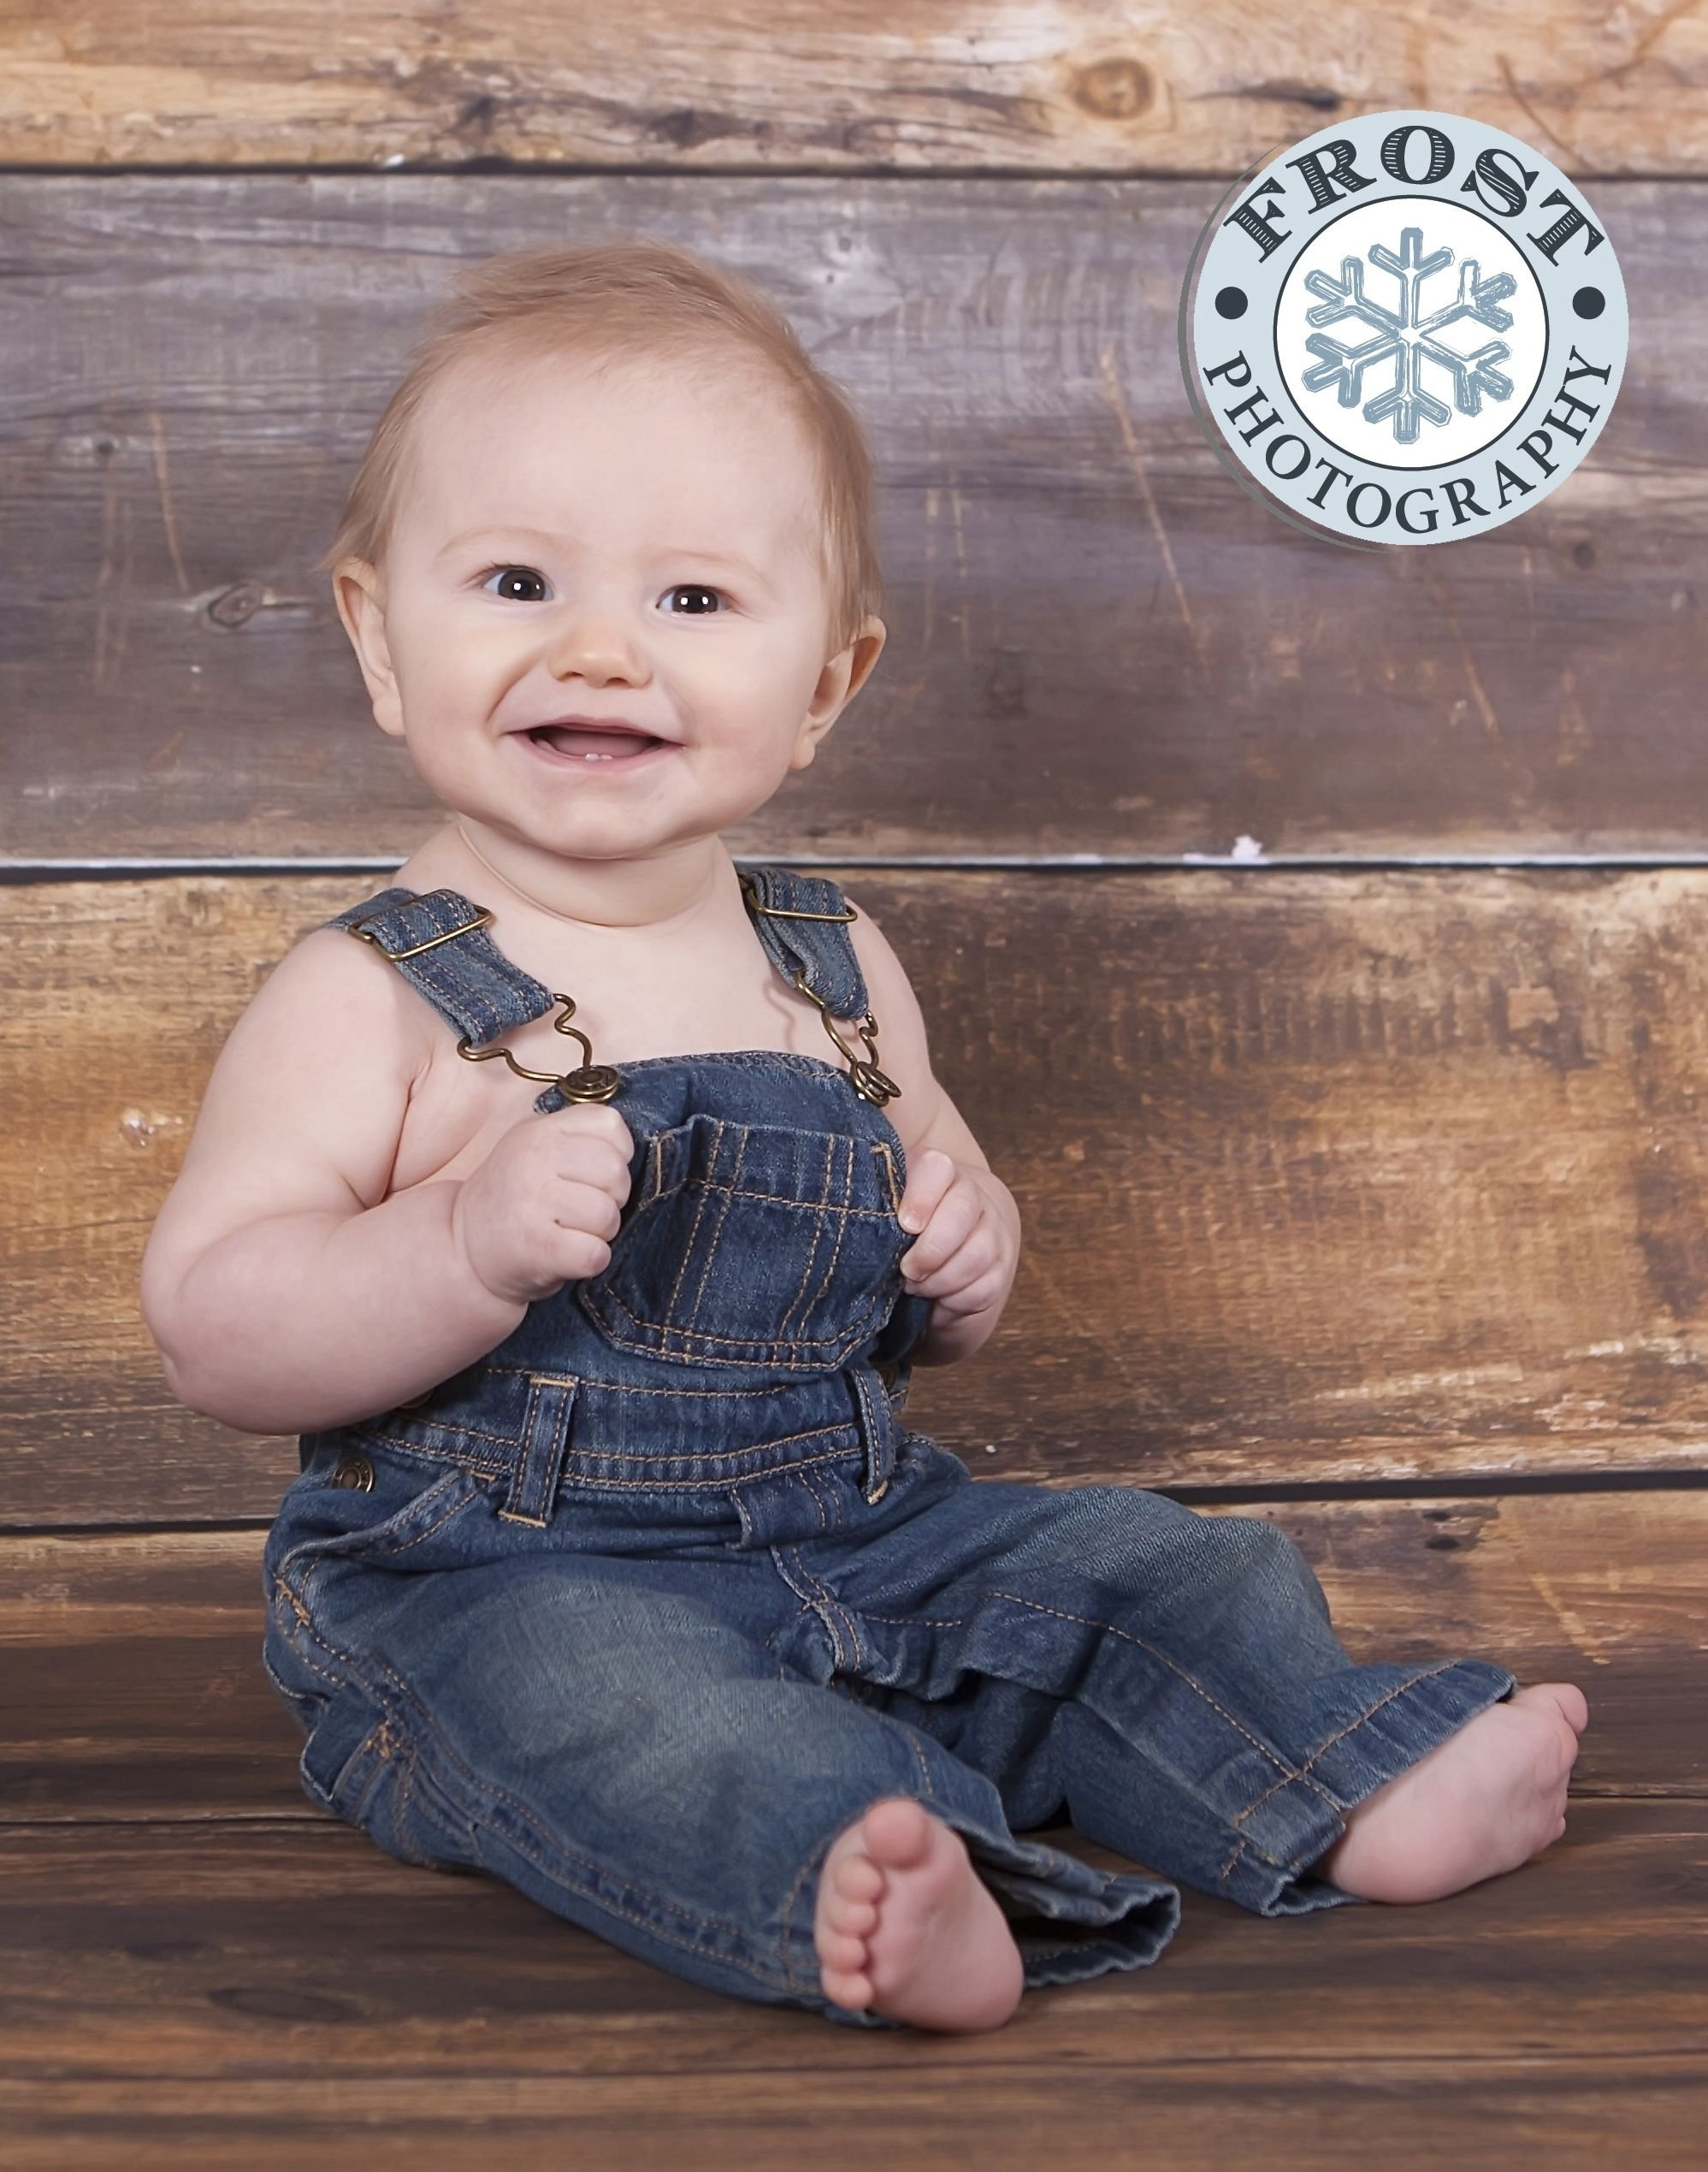 6 month baby boy overalls portrait - google search | picture ideas